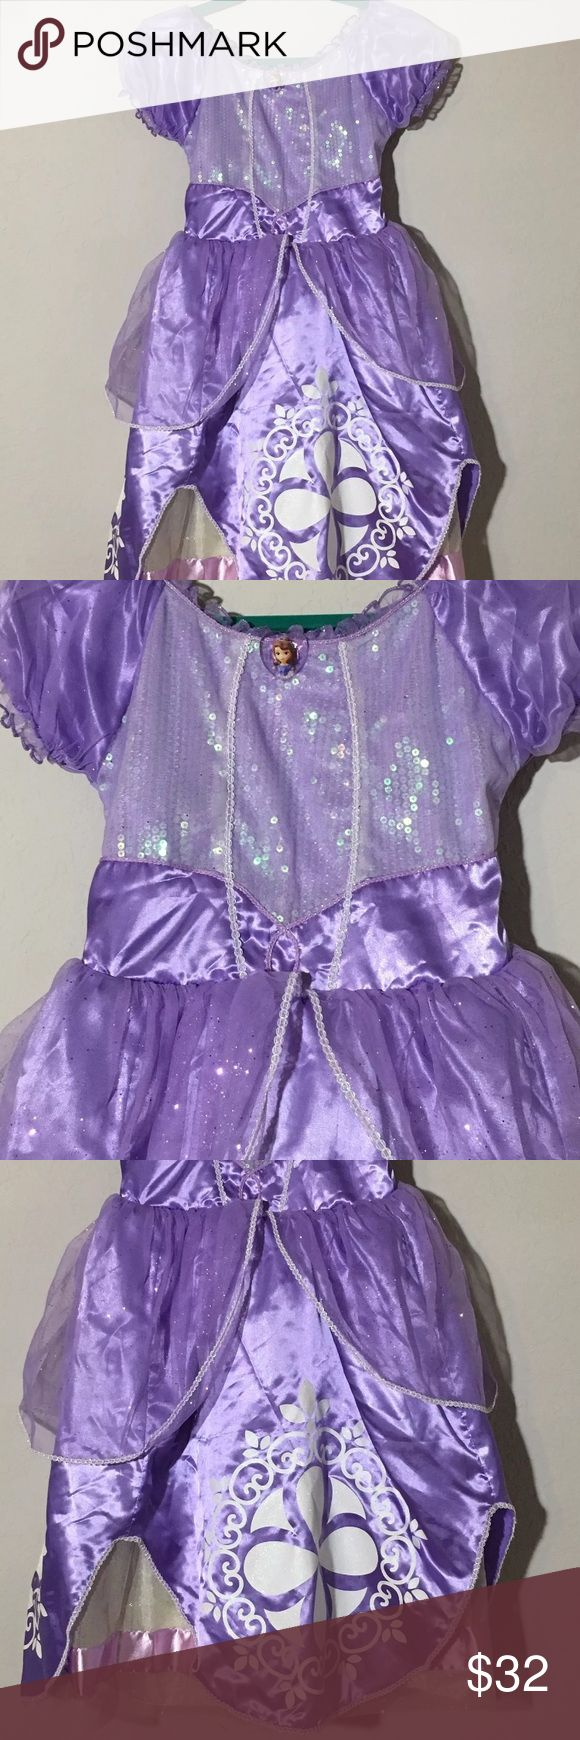 Disney Sofia The First Dress Up Costume Pretend Girls Disney Store Sofia the First dress up costume Pretend dress. Size 7/8. Excellent condition no flaws Disney Costumes